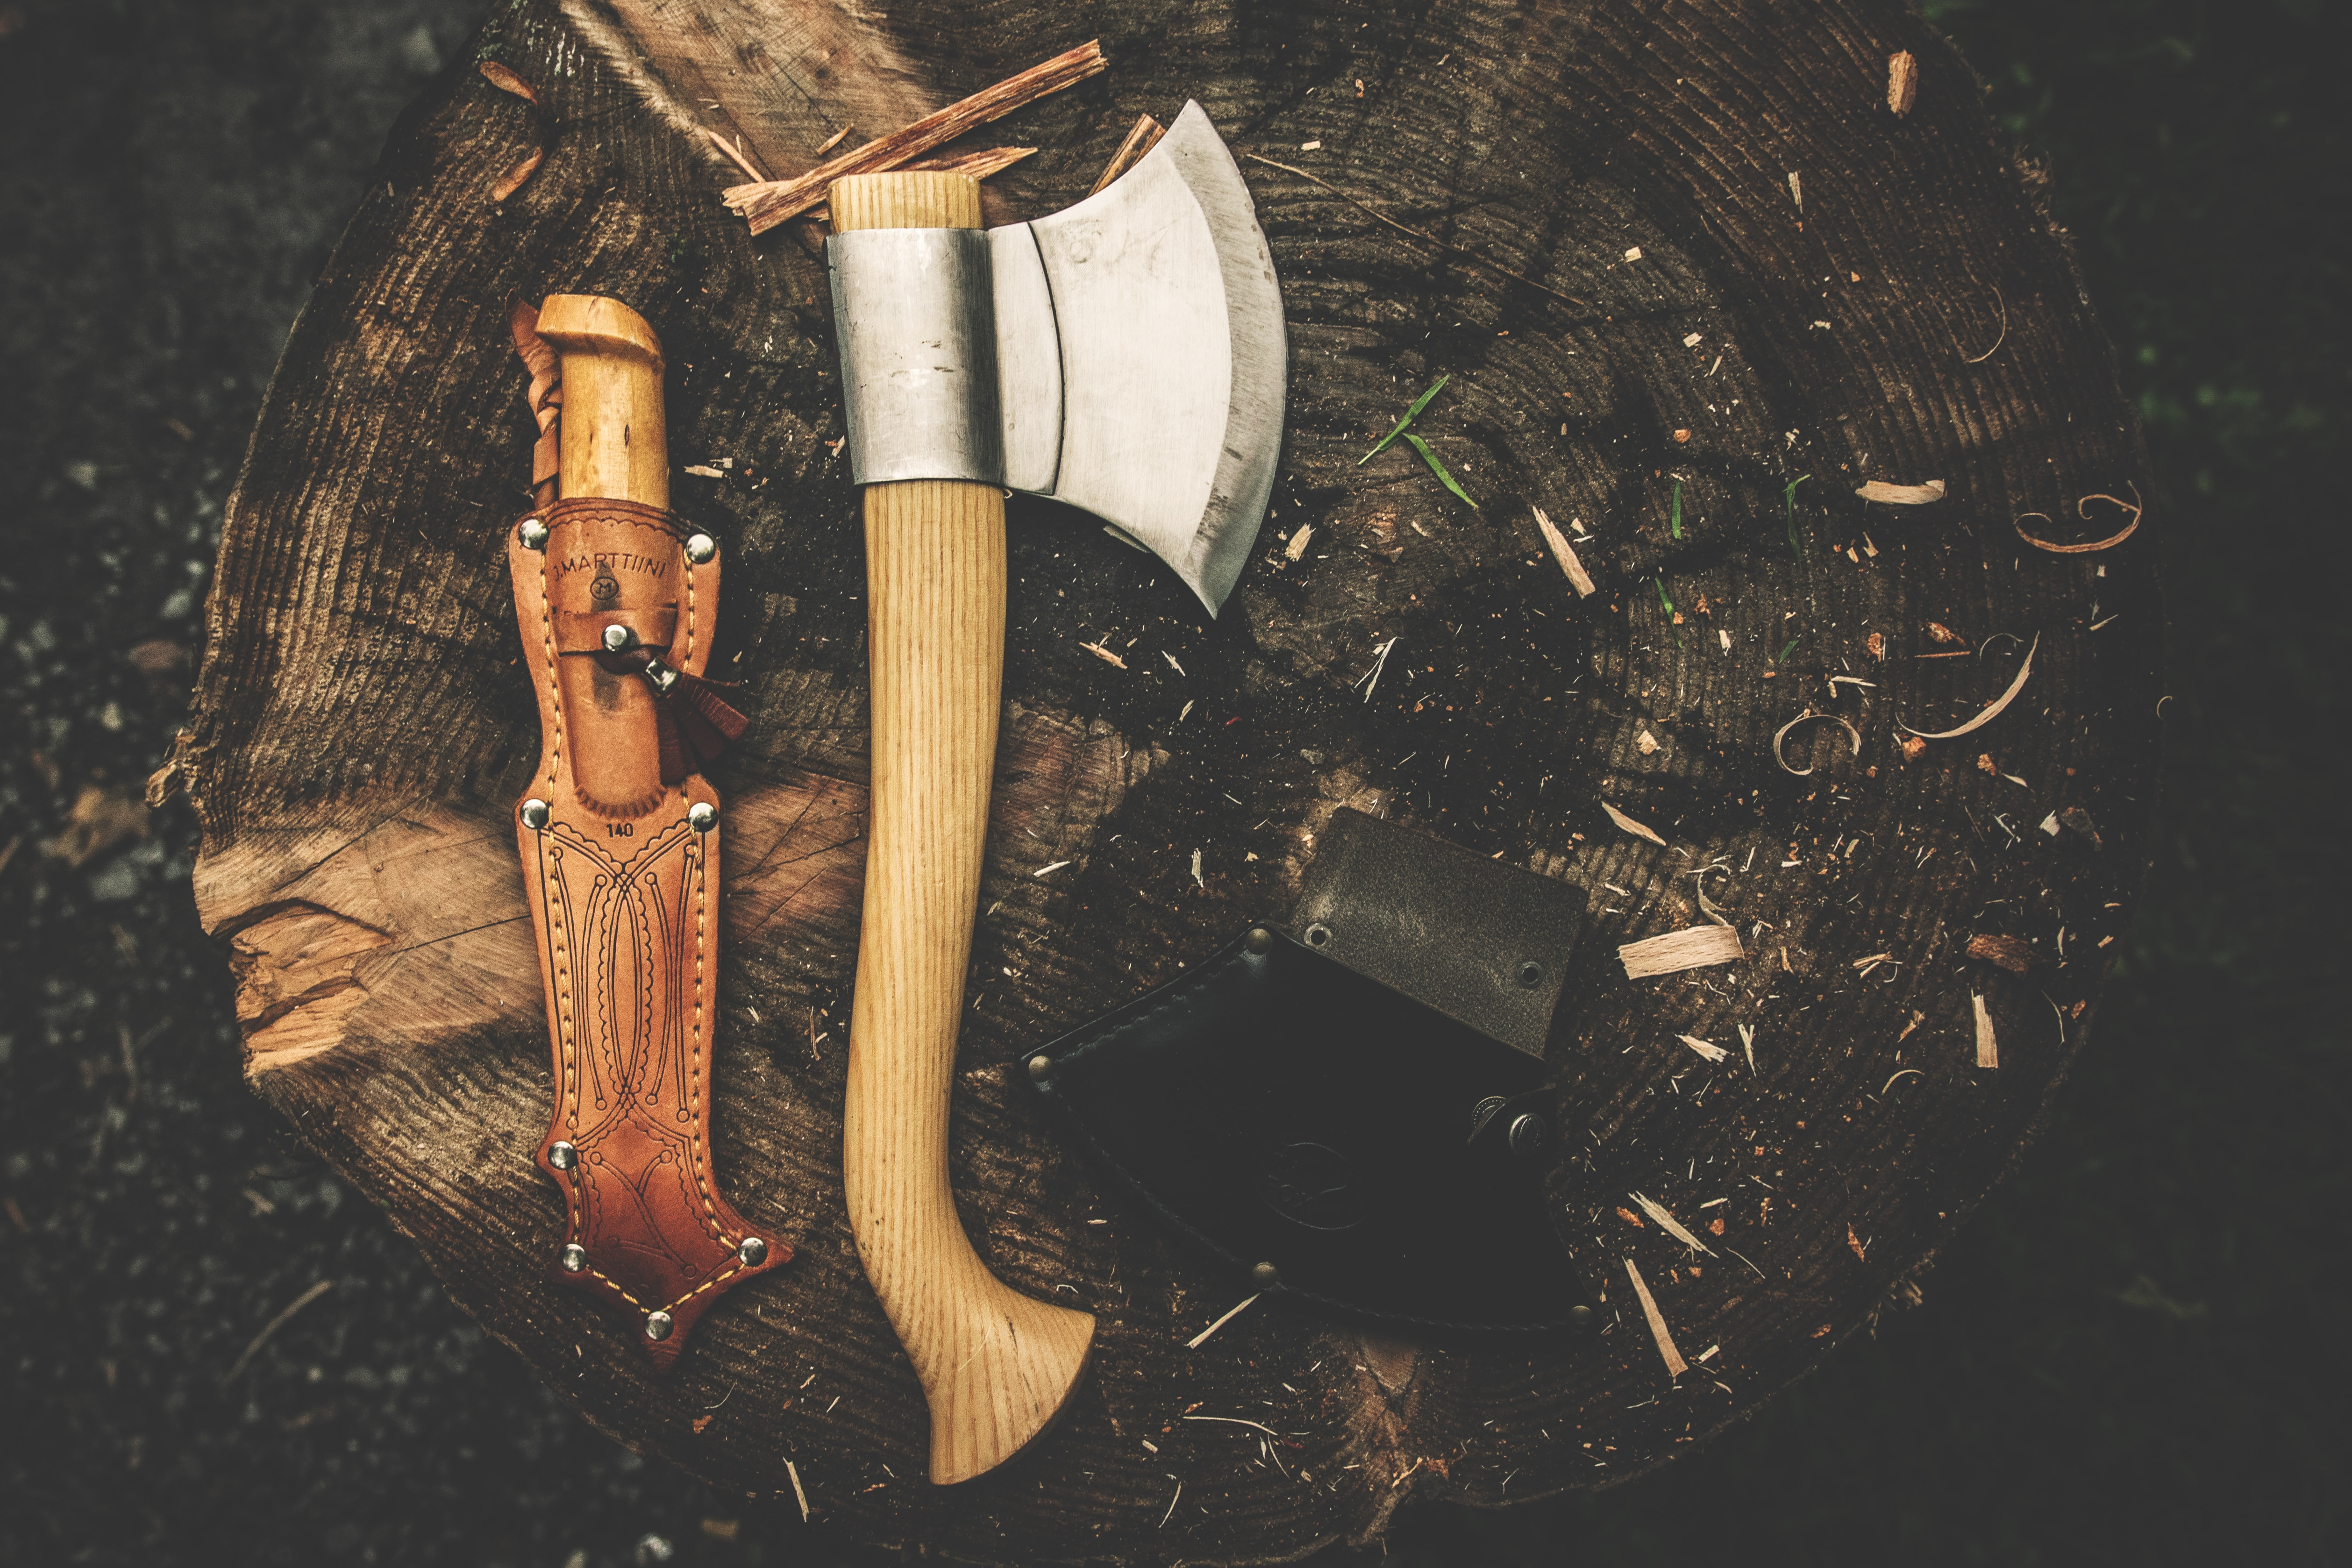 A bushcraft knife and an axe laying on a tree stump